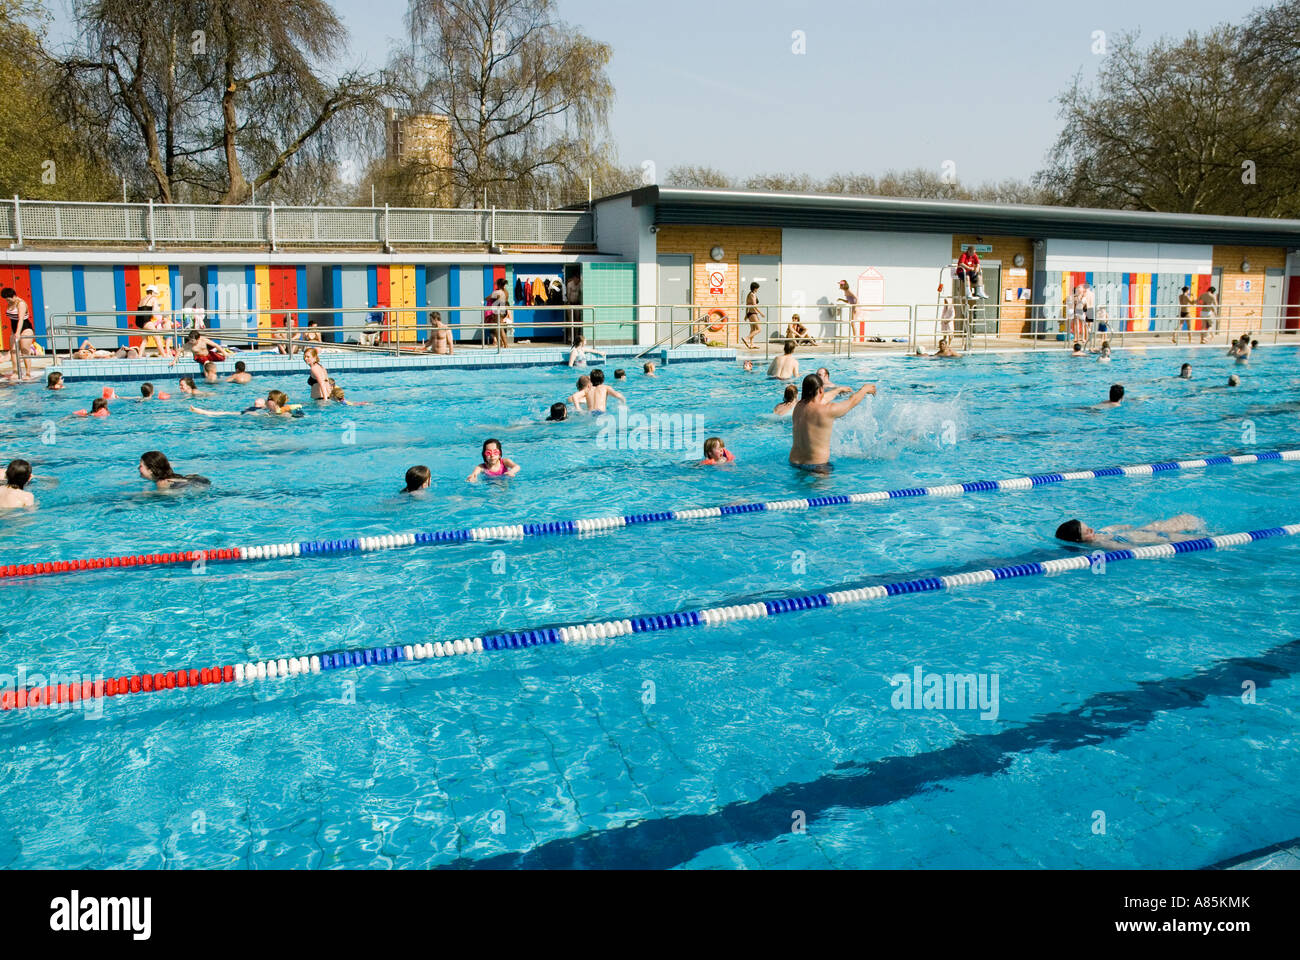 People enjoying sunny afternoon London Fields LIDO London Borough of Hackney outdoor swimming pool Stock Photo